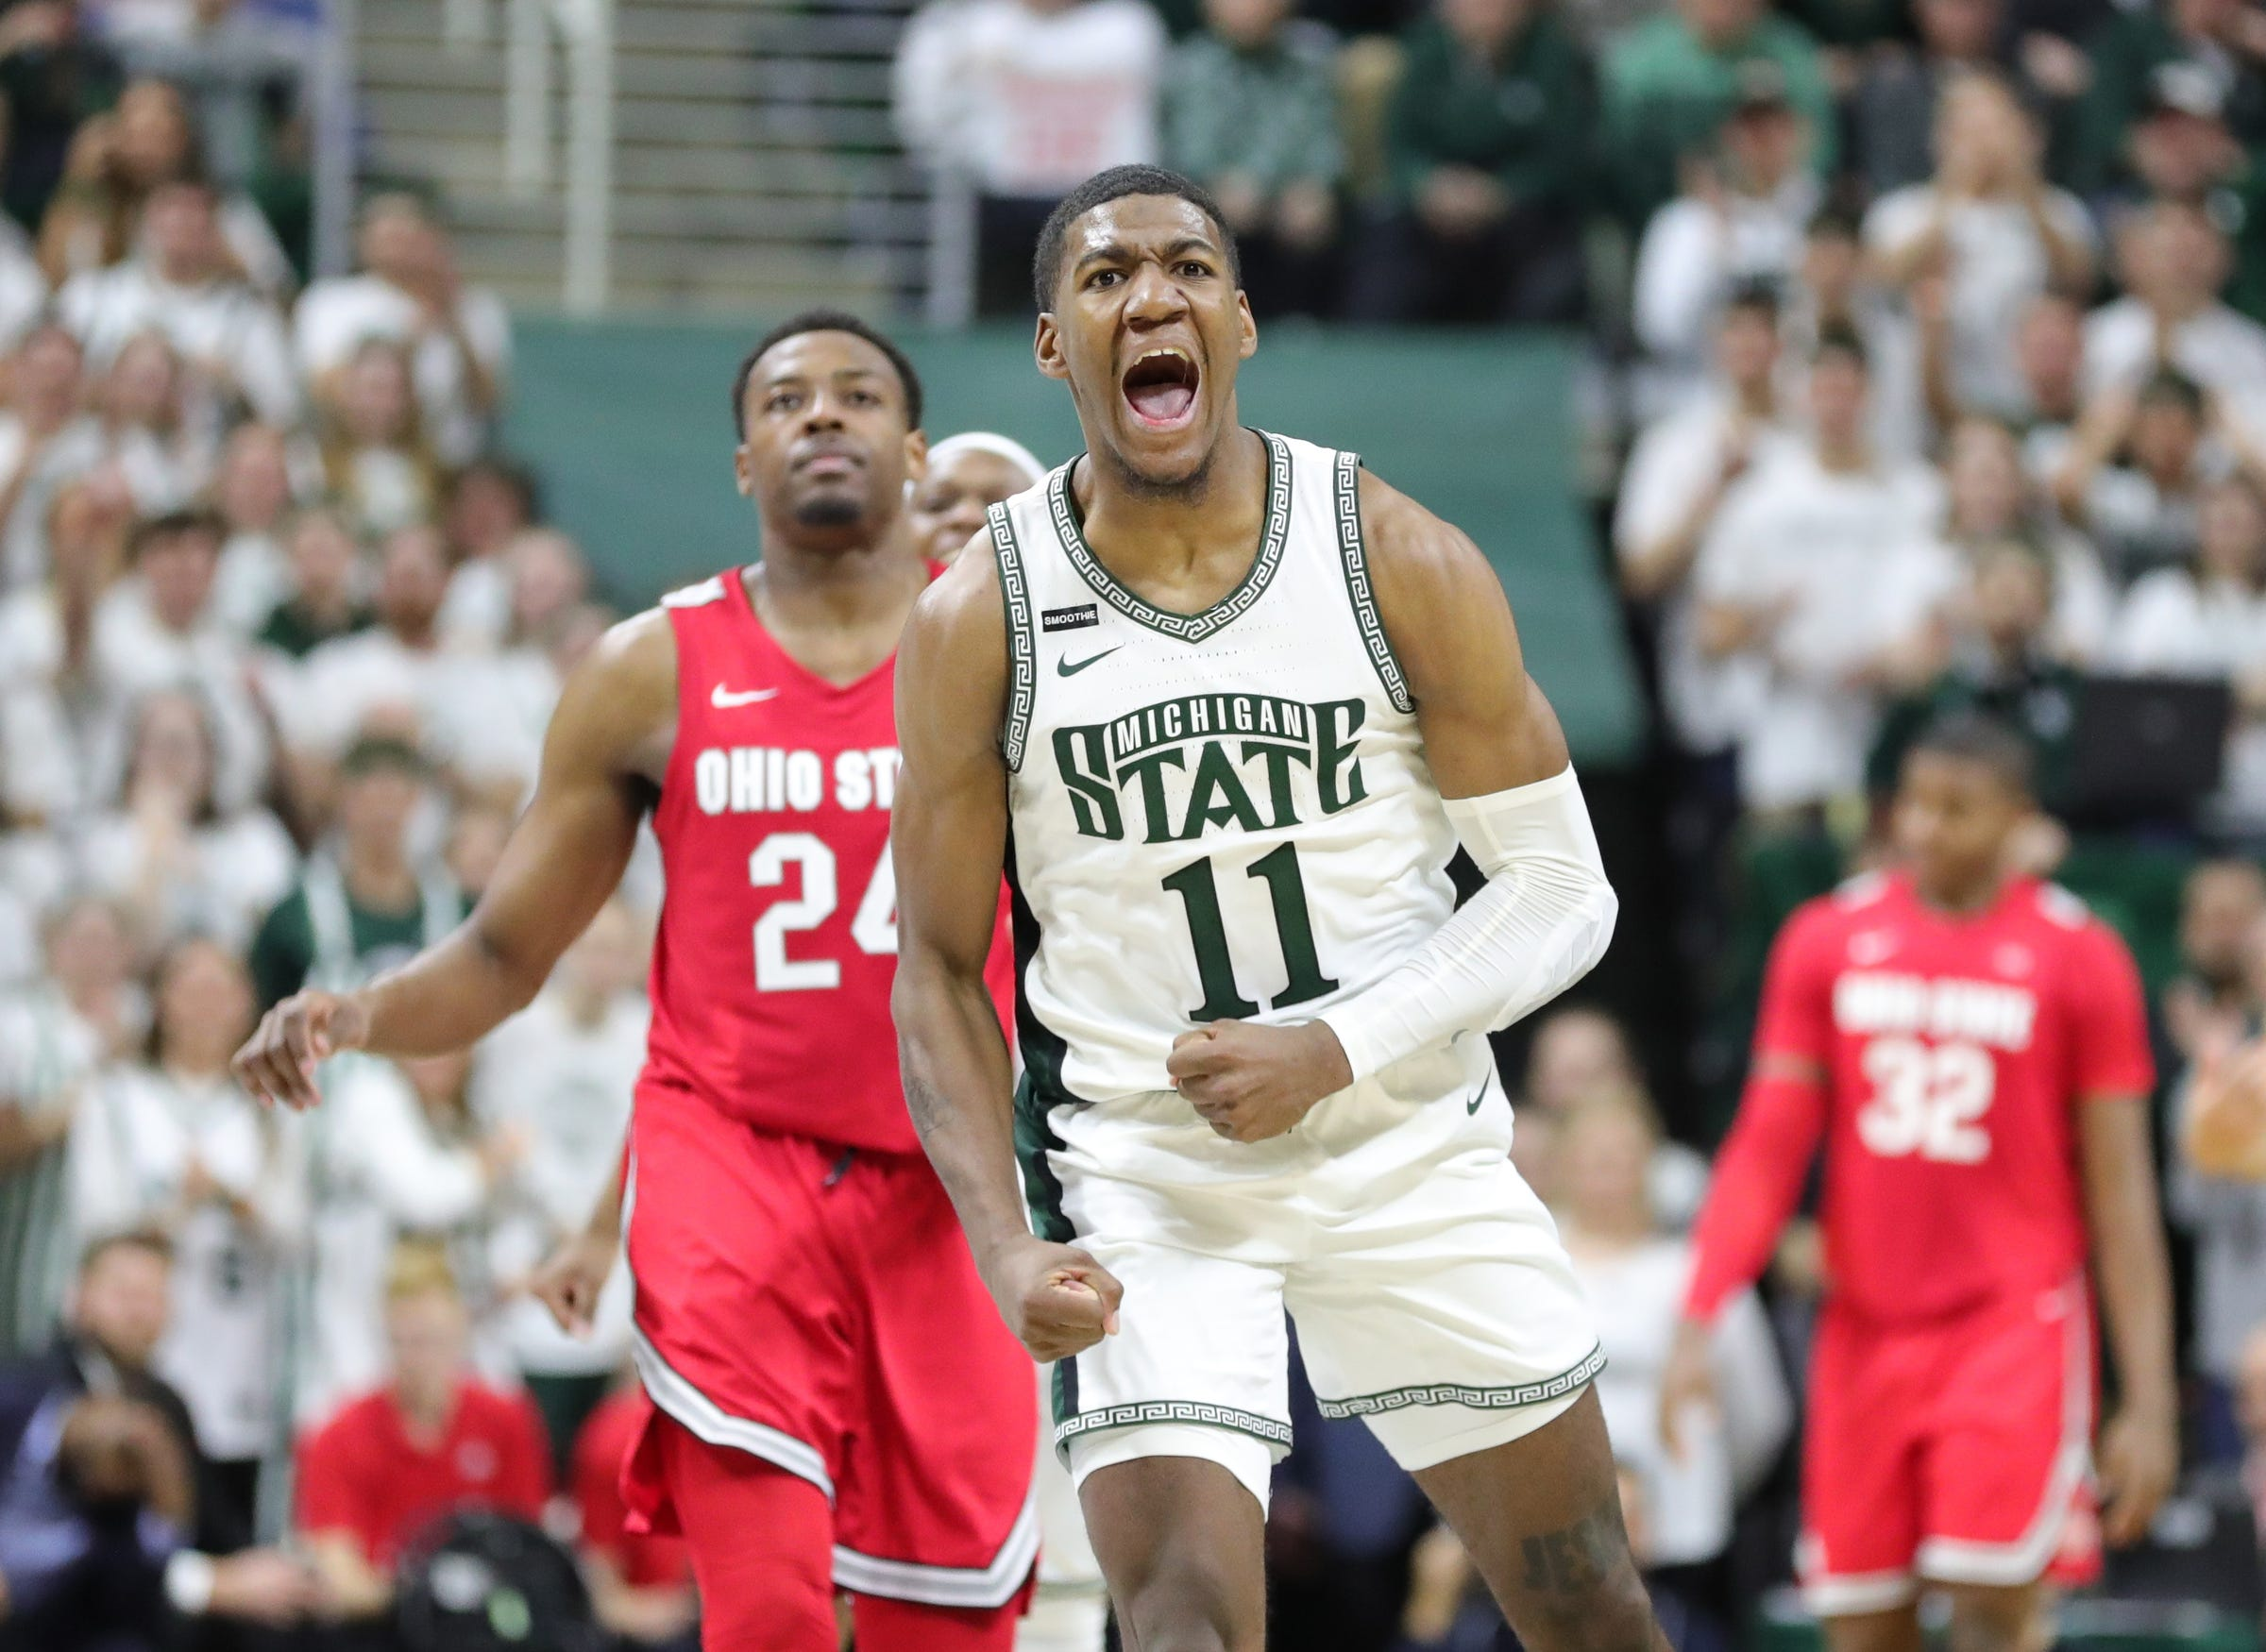 Michigan State forward Aaron Henry celebrates during the 80-69 win against Ohio State on Sunday, March 8, 2020 at the Breslin Center. Michigan State